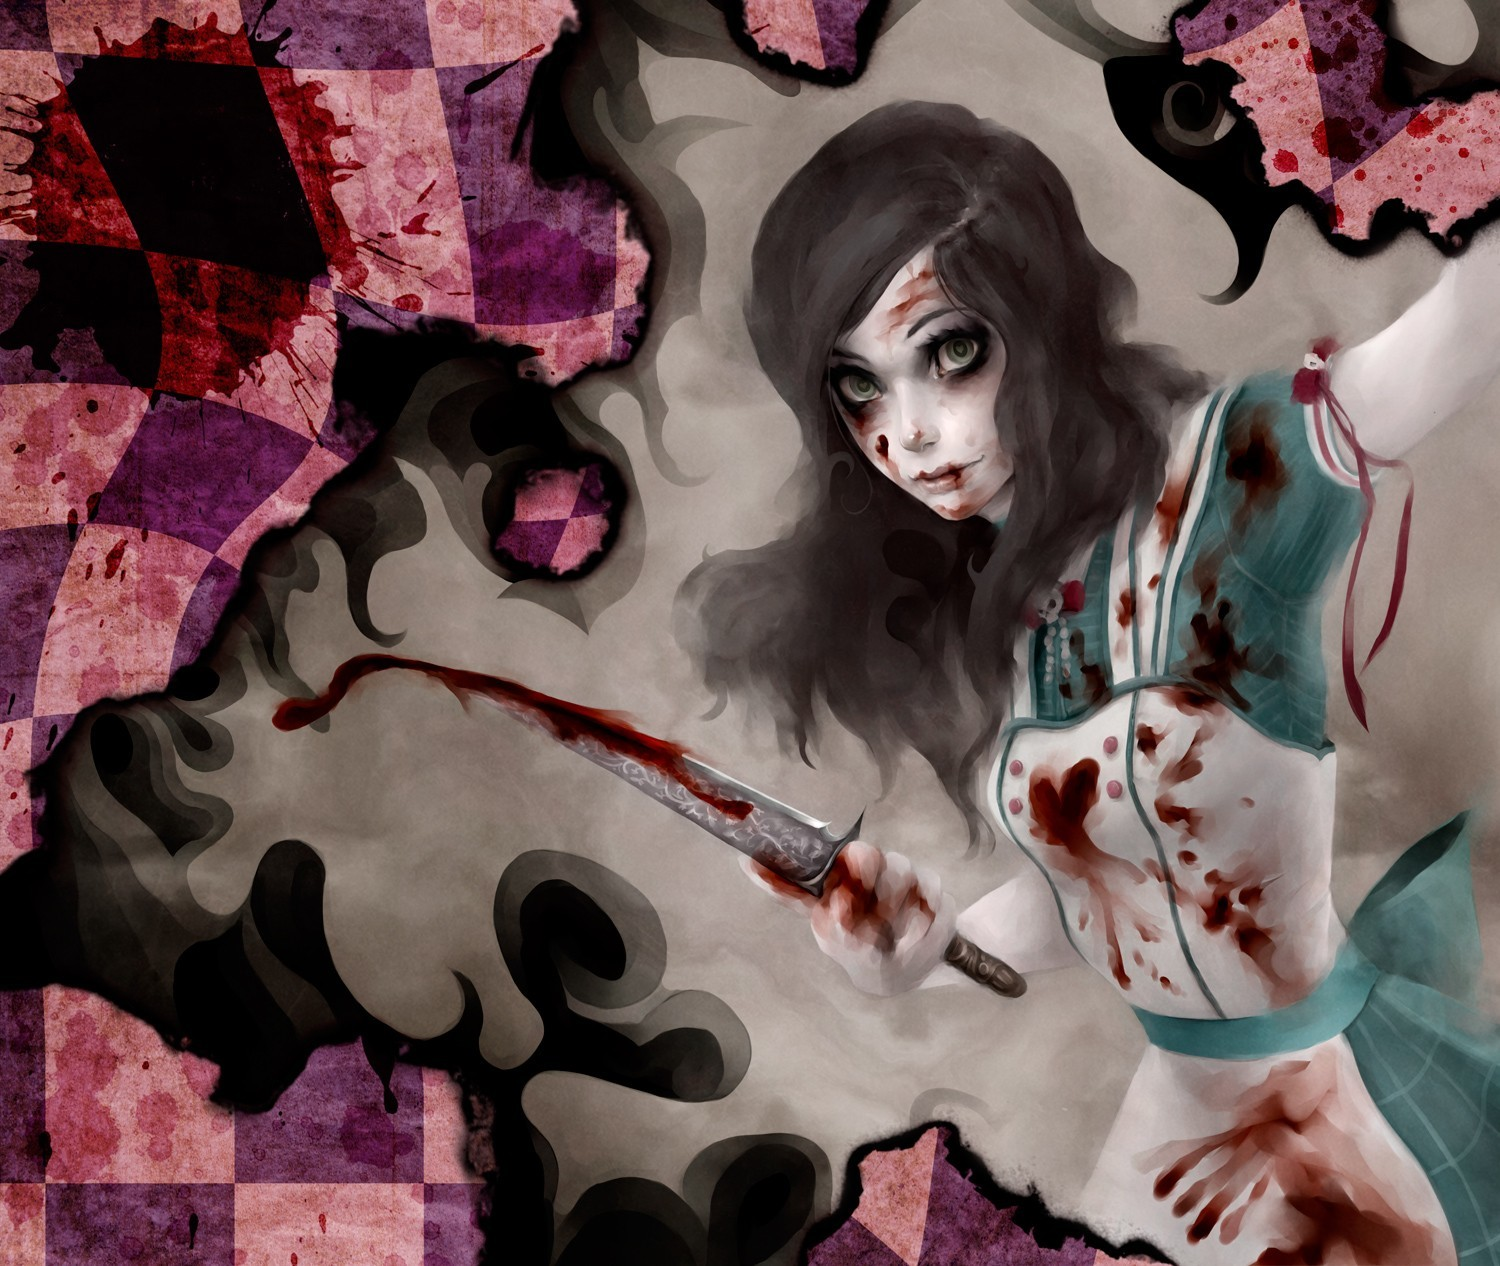 brunettes creepy video games HD Wallpaper